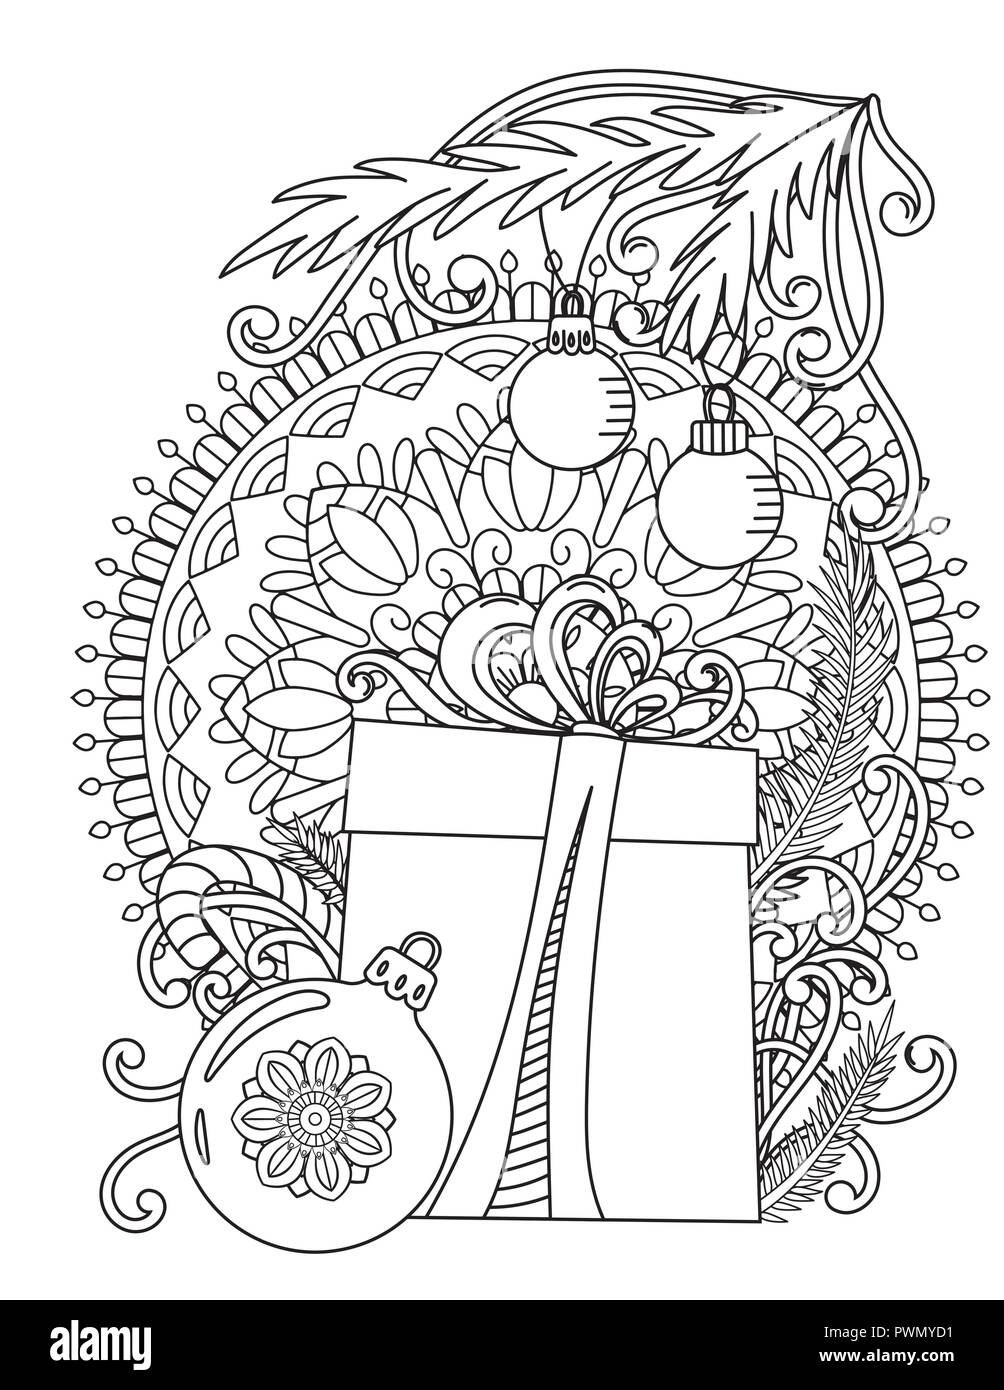 christmas mandala coloring page adult coloring book holiday gift balls and ribbons hand drawn vector illustration